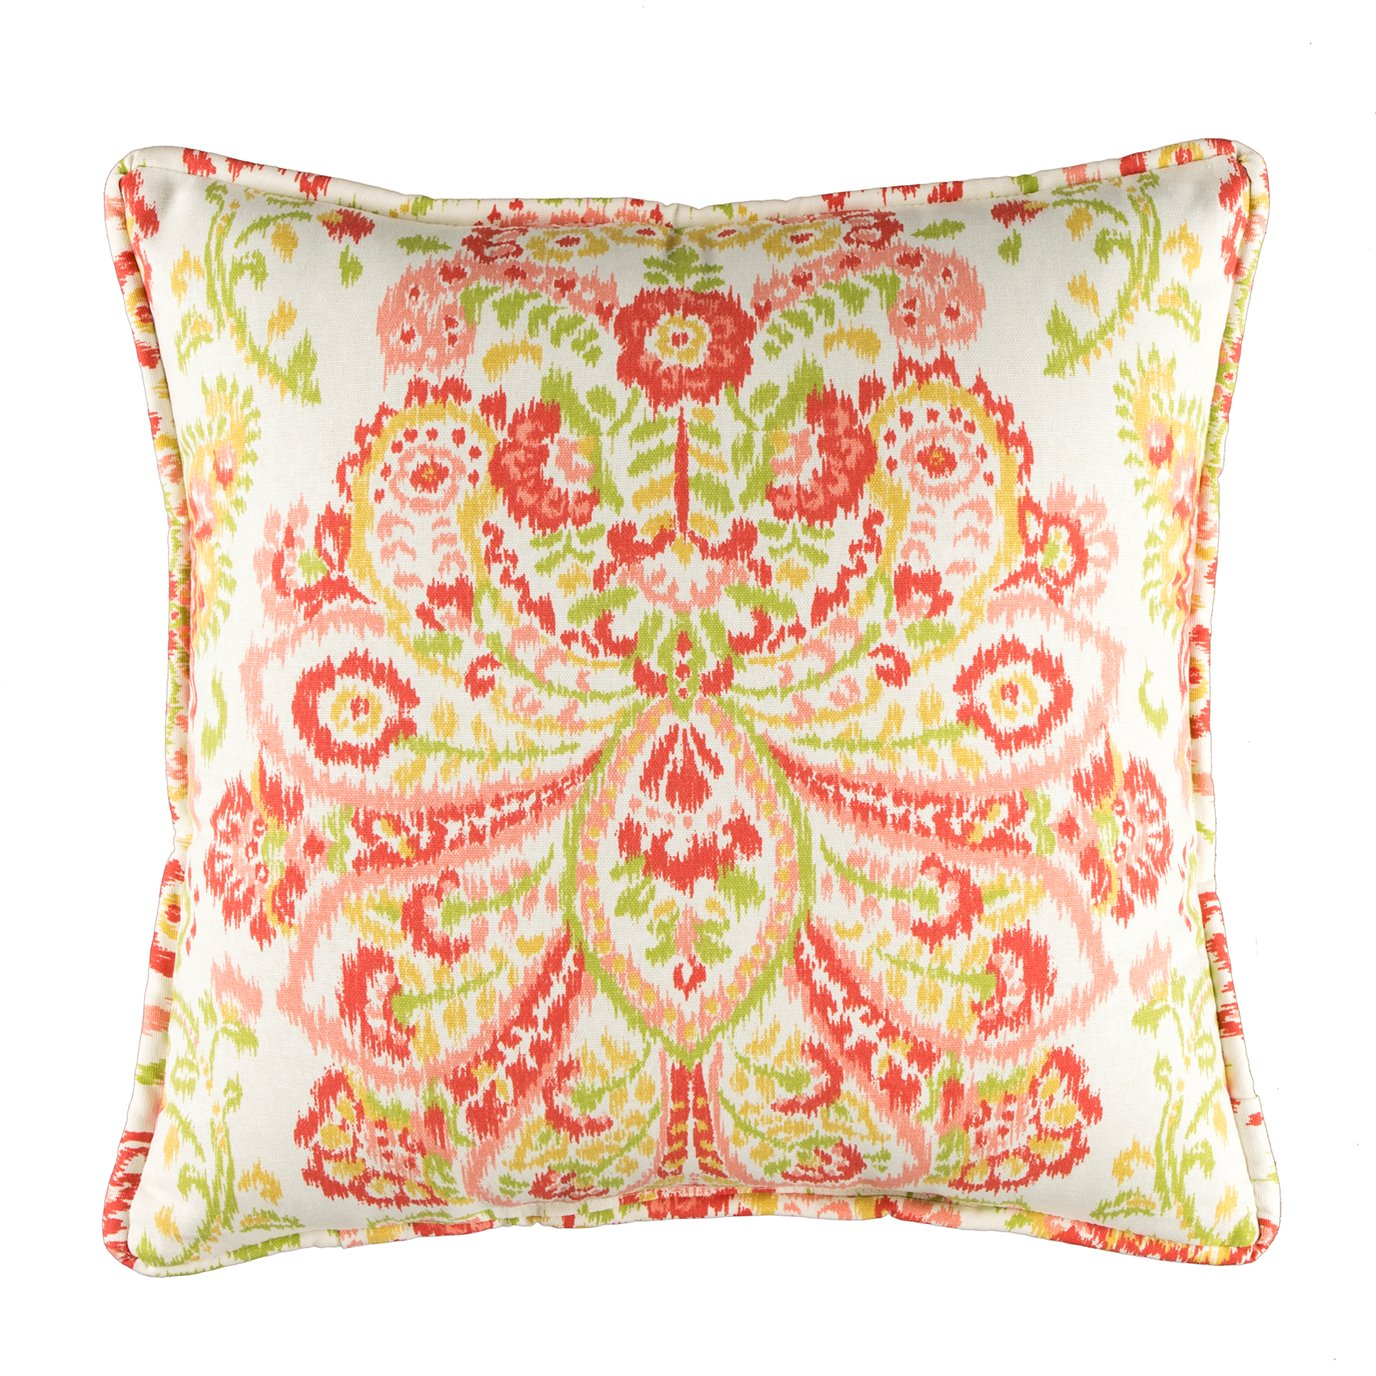 Provence Poppy Printed Square Pillow